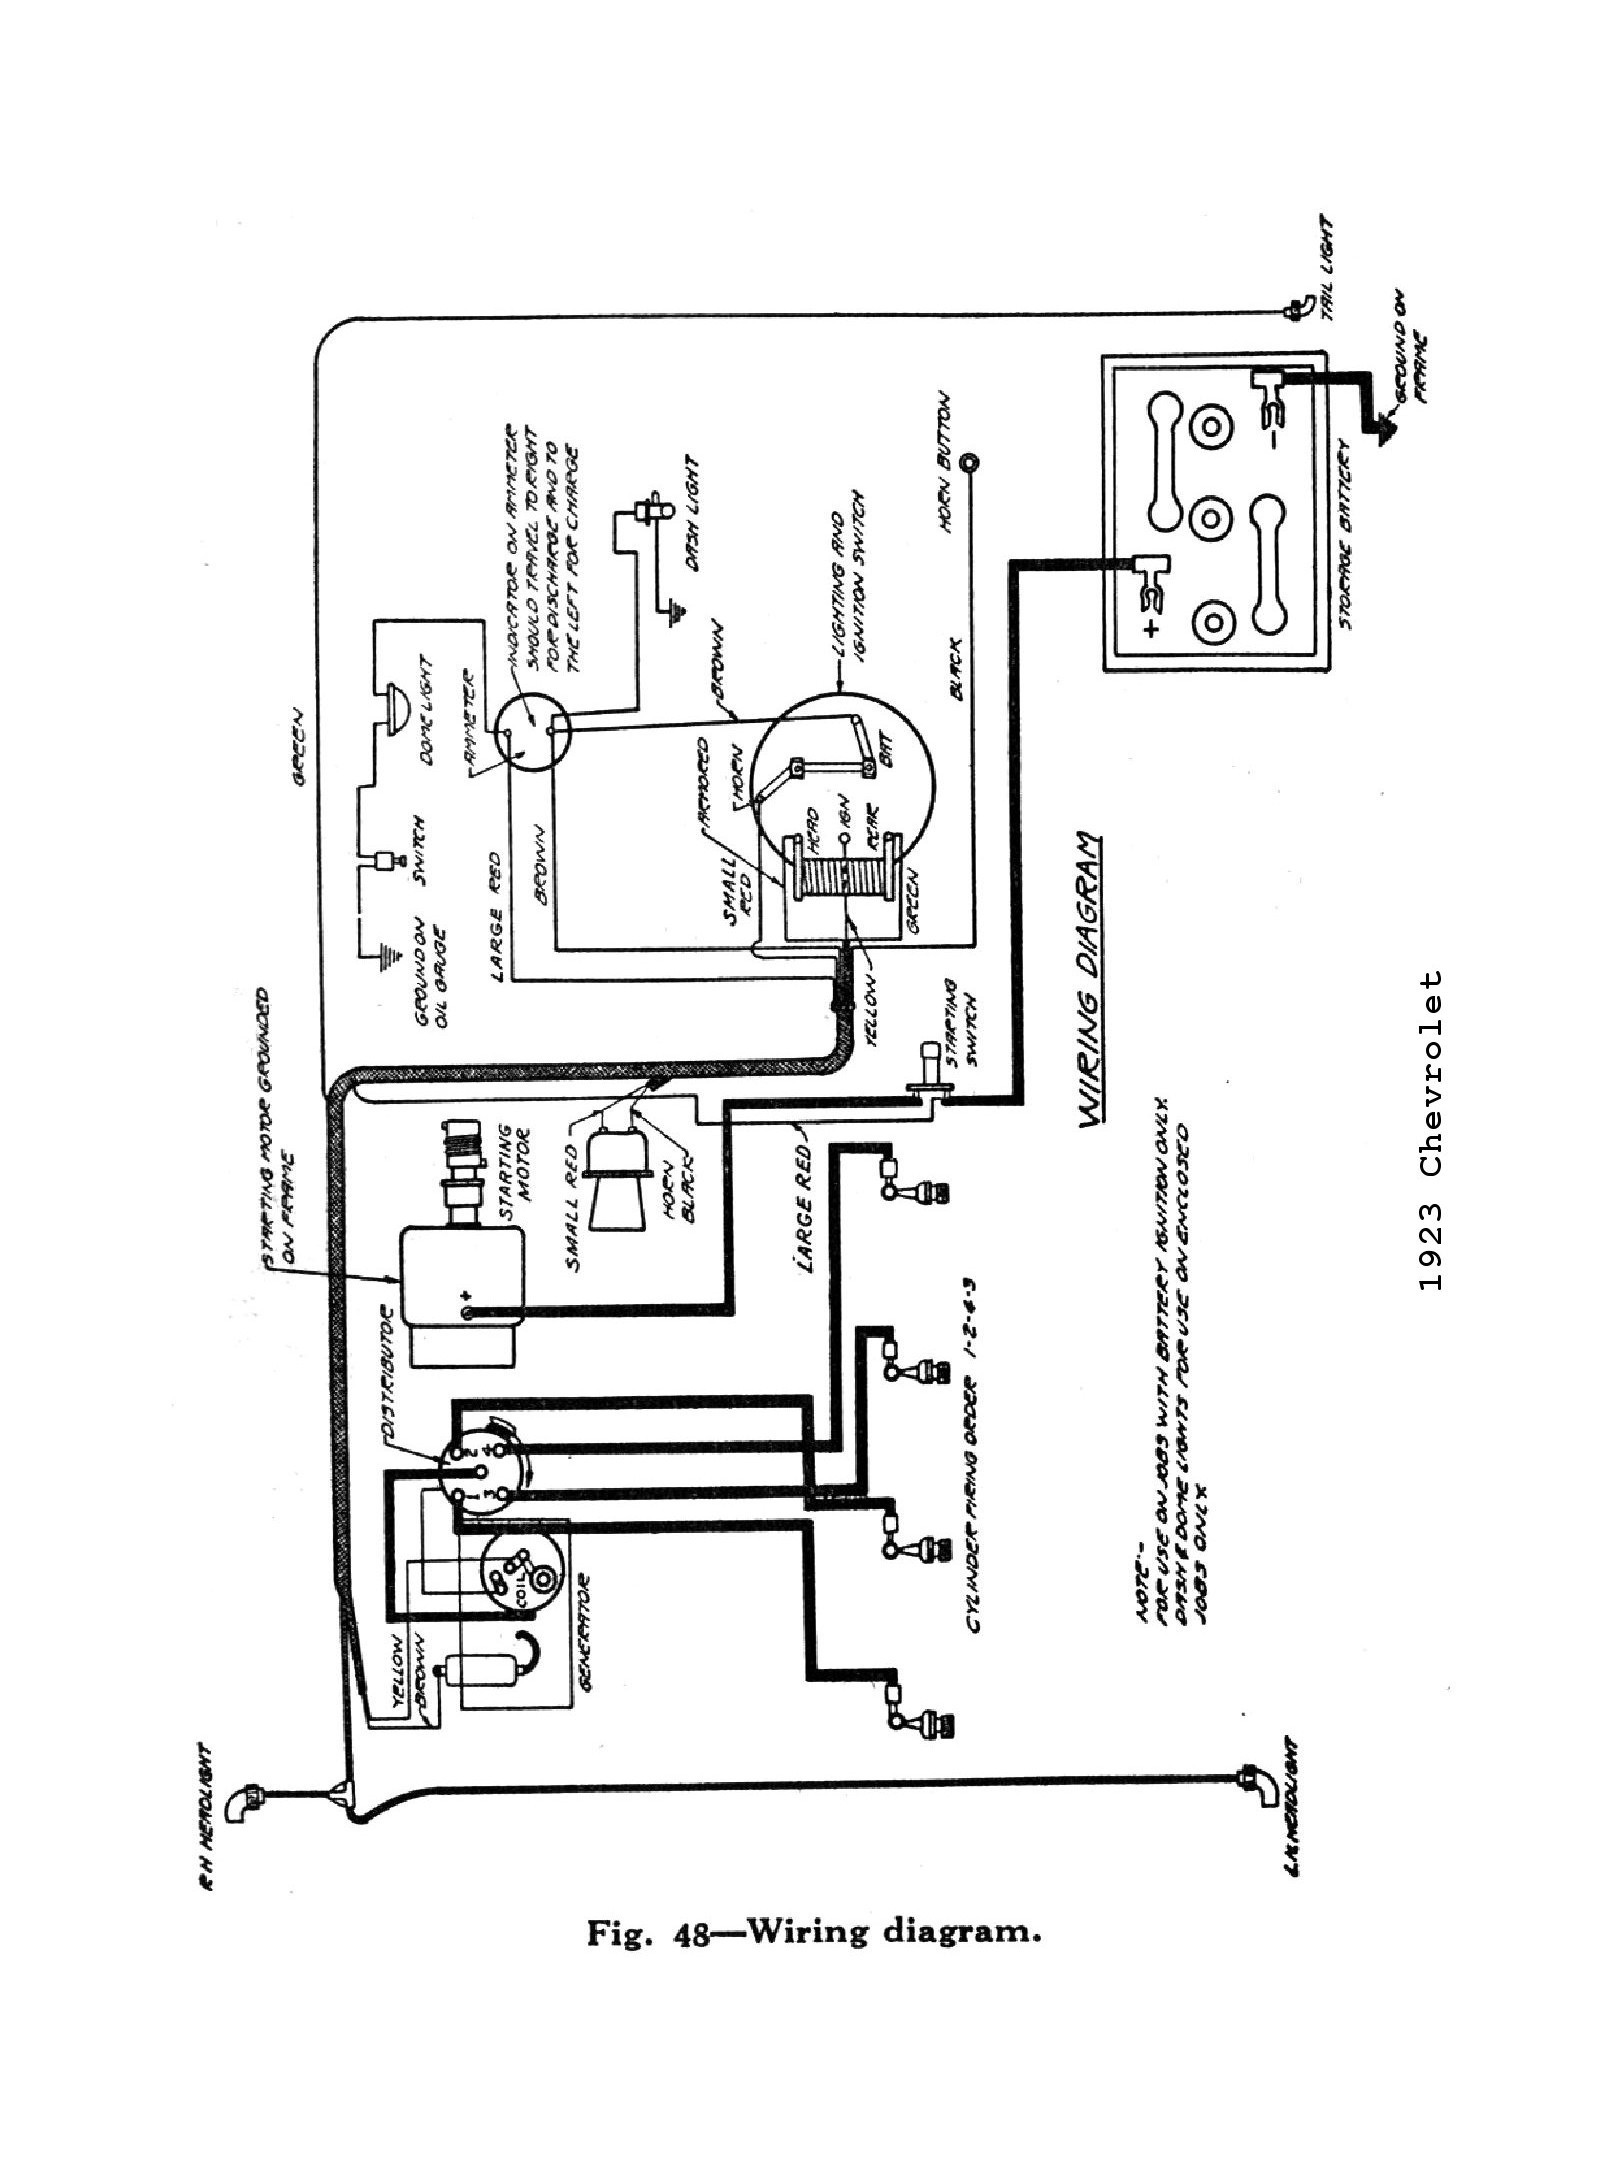 Alternator Wiring Diagram Chevy Fresh 3 Wire Alternator Wiring ...